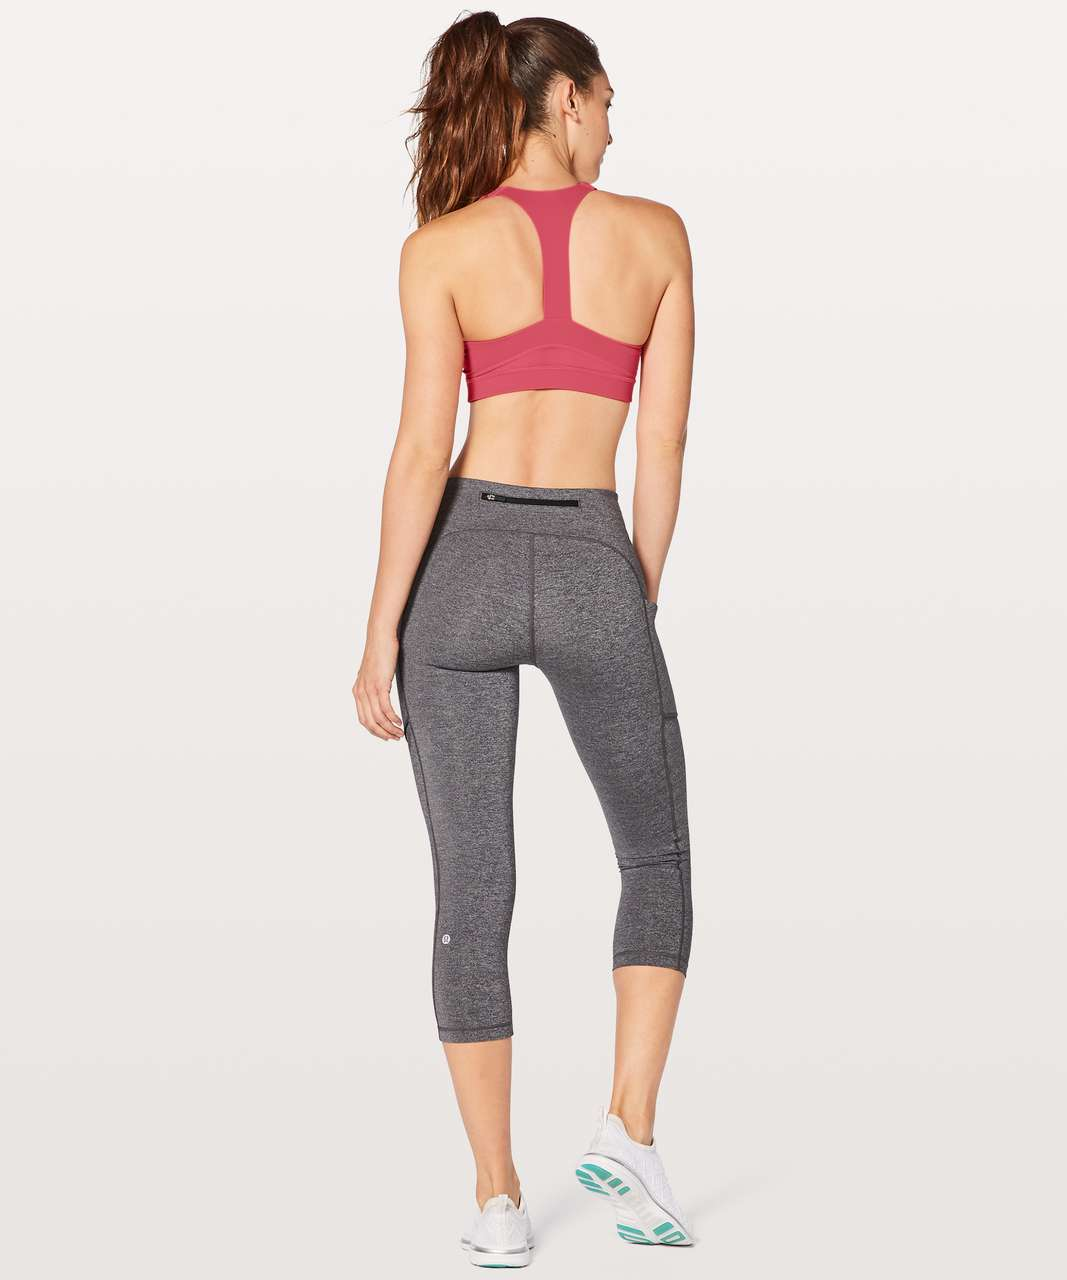 Lululemon Break Free Bra Nulux - Flash Light Tone